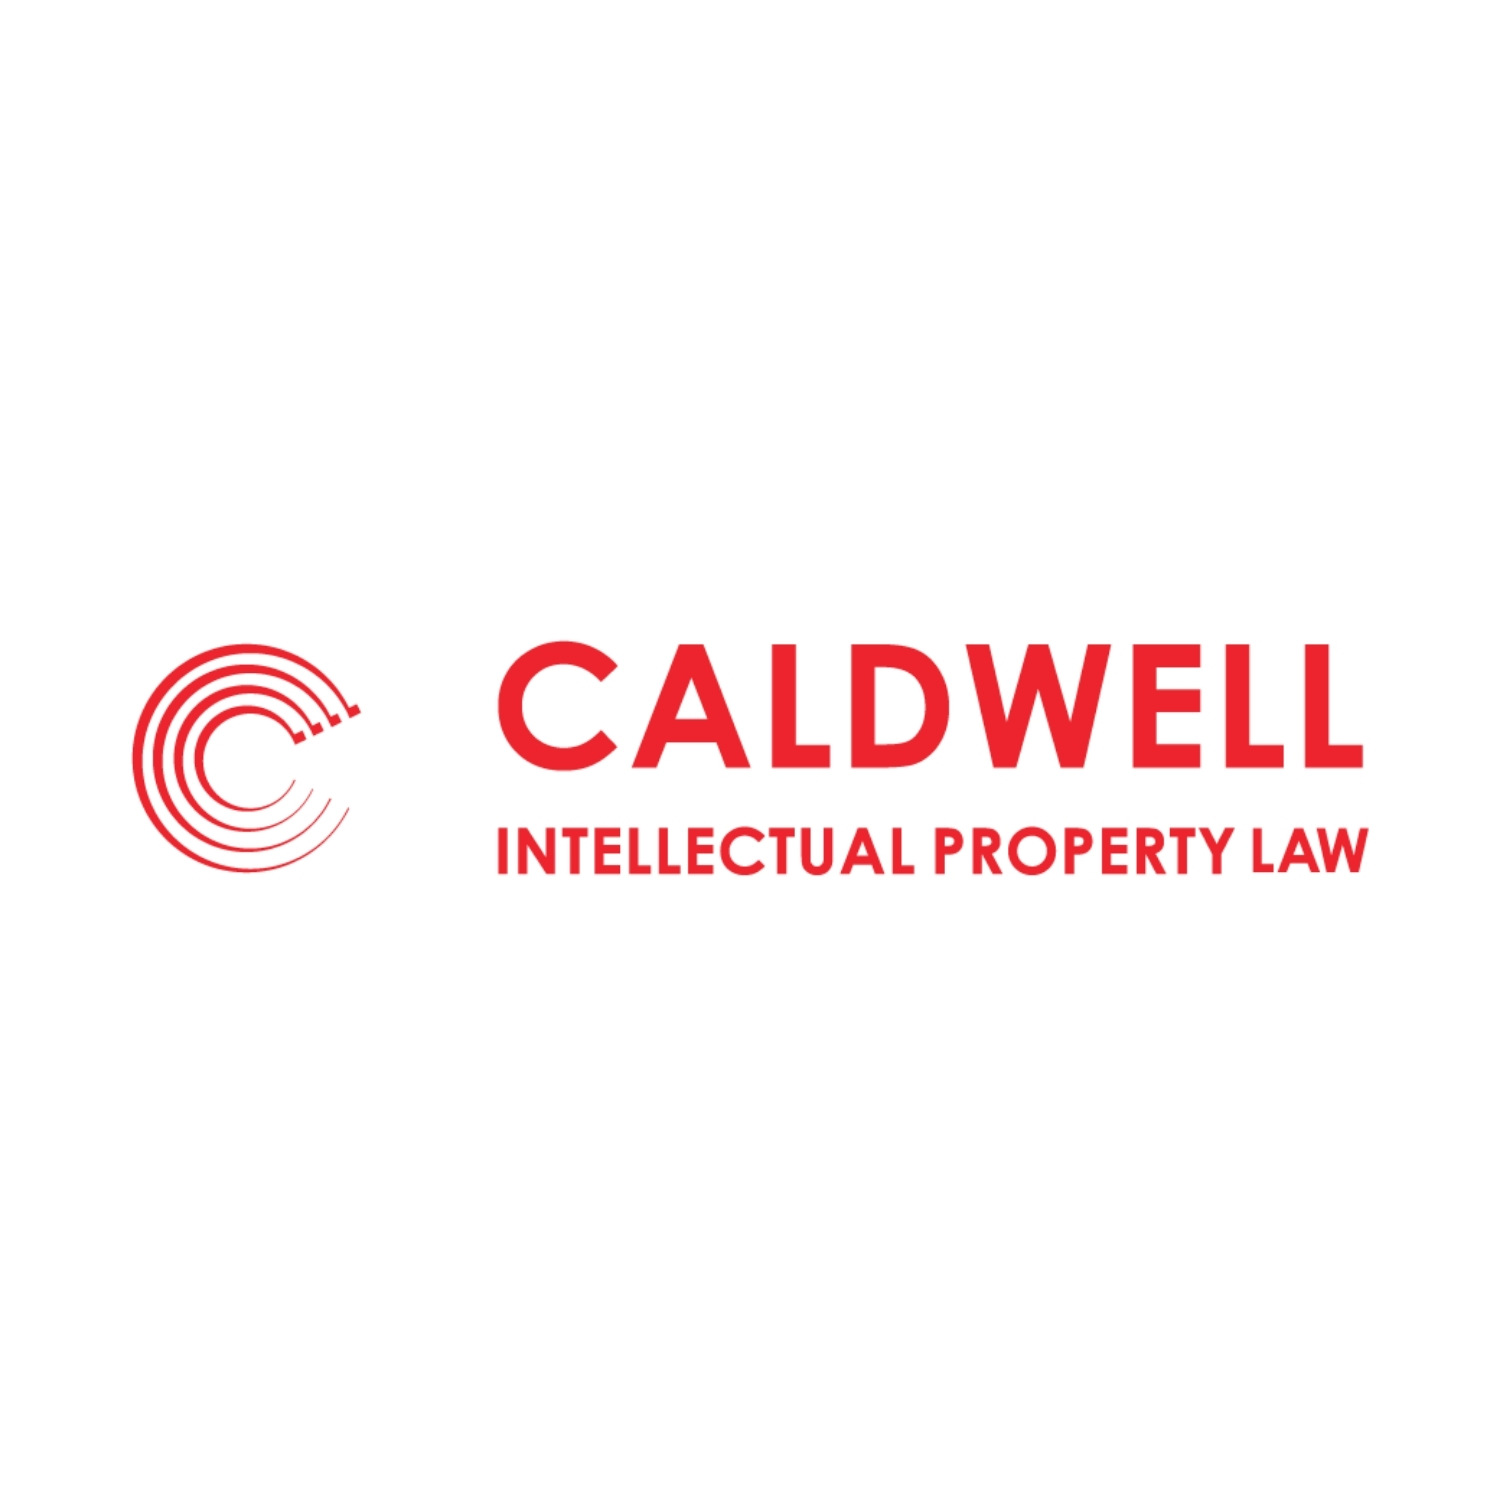 Caldwell Intellectual Property Law